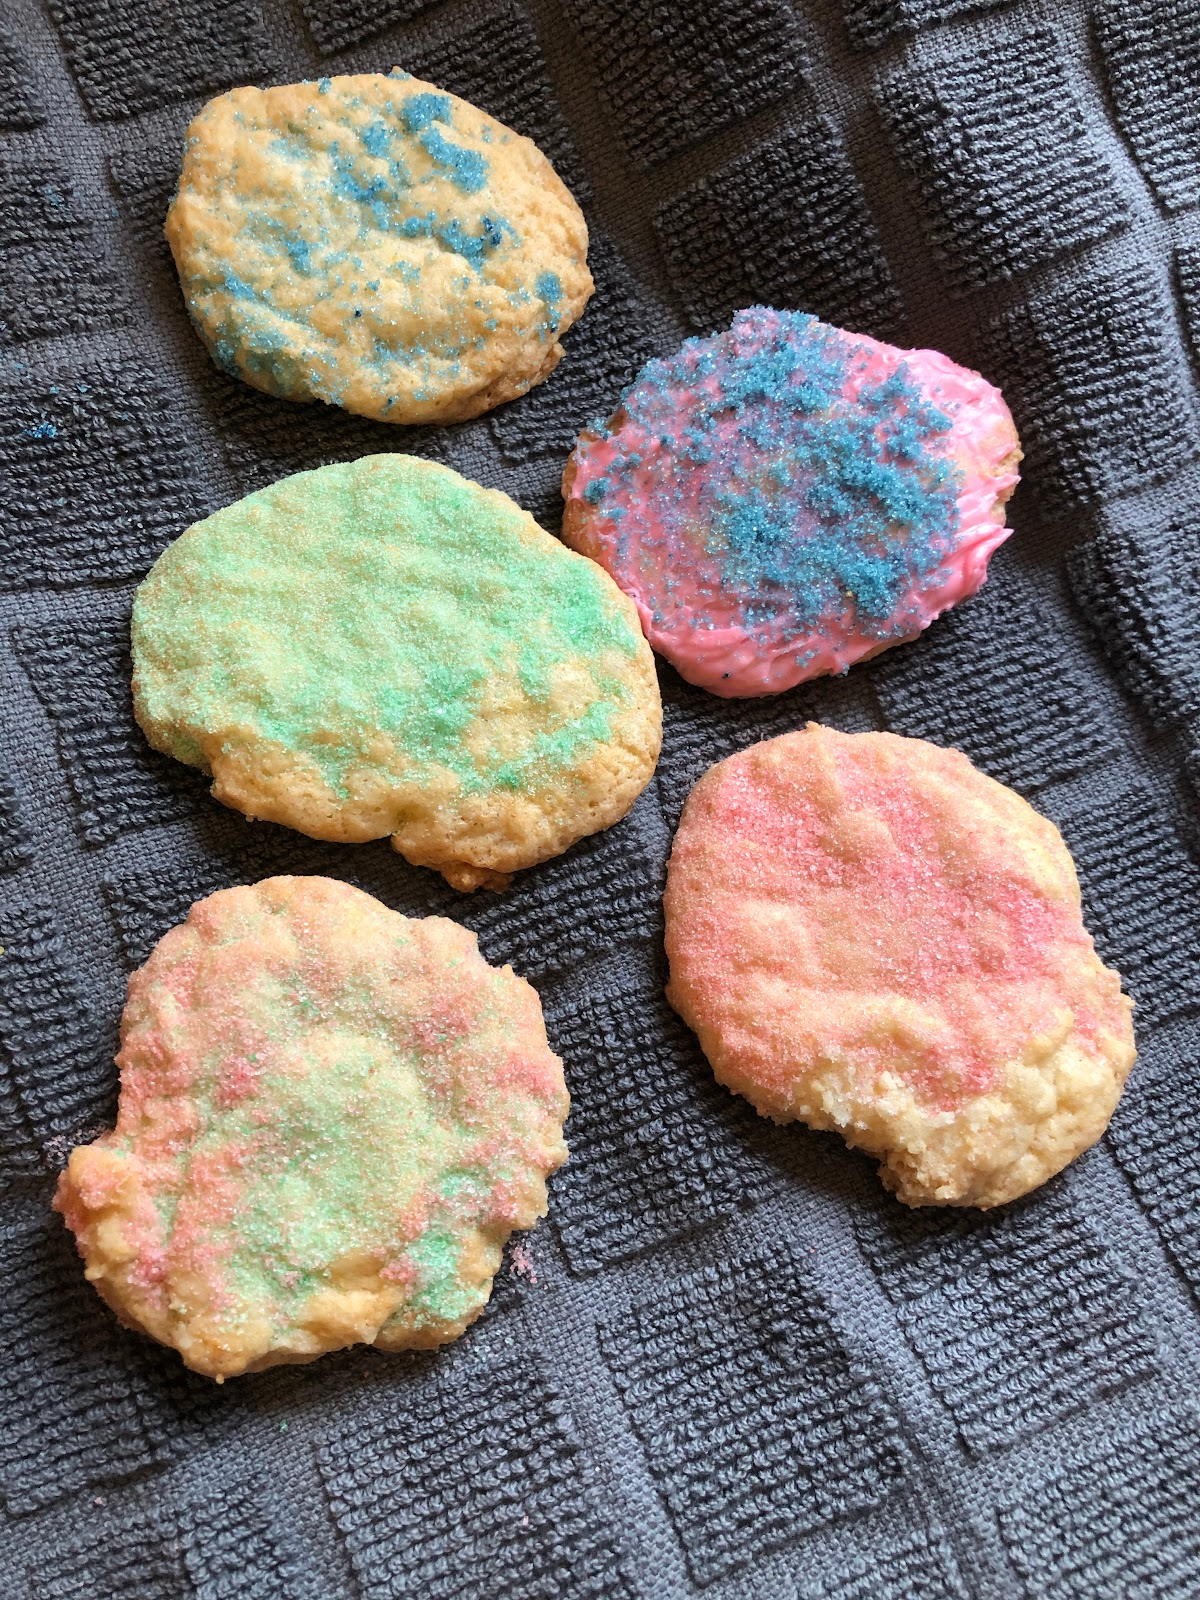 A fresh batch of sprinkle cookies and one frosted ones.